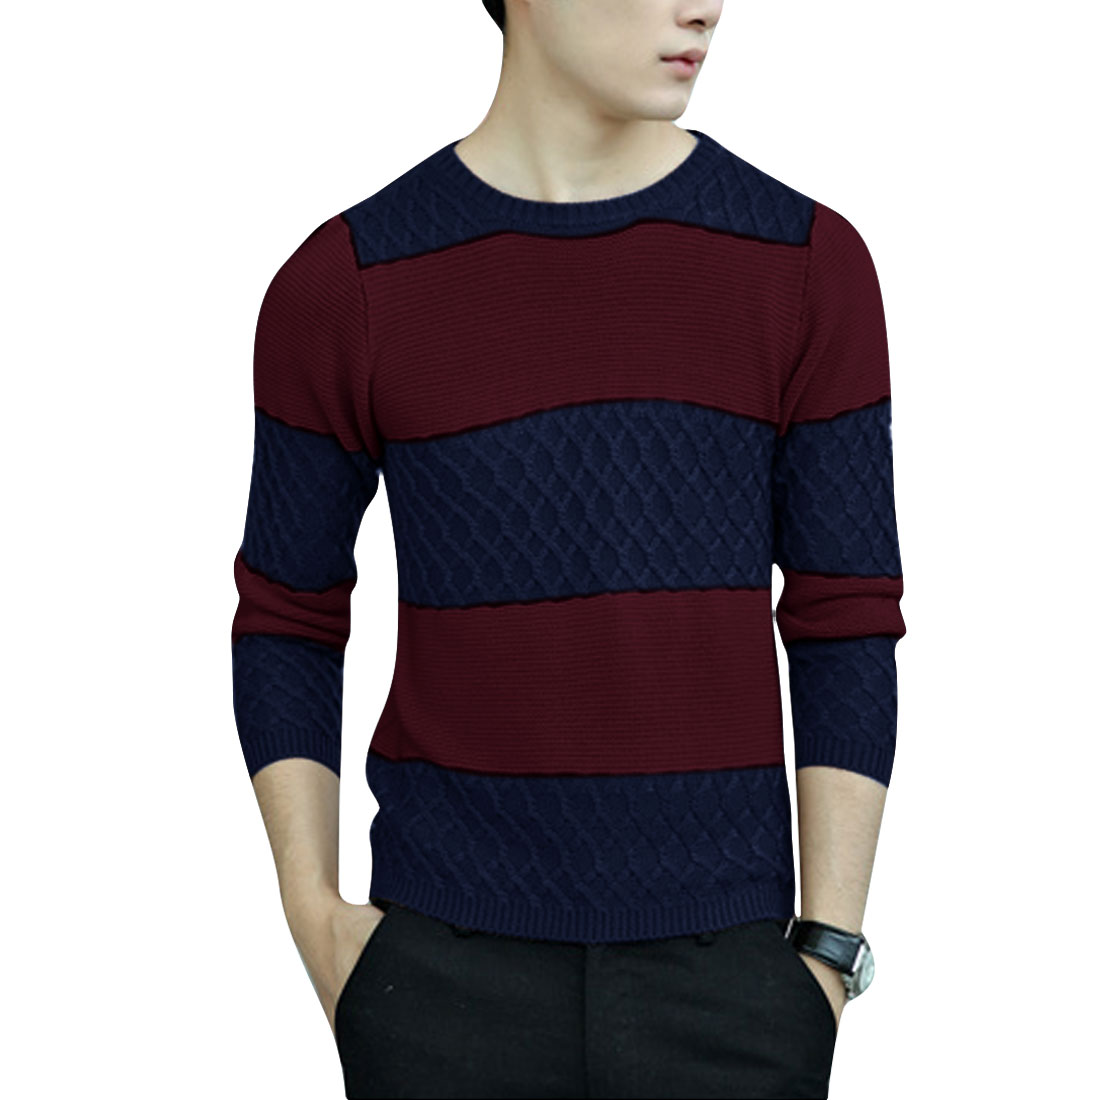 Men's Fashion Color Block Soft Wine Red Knit Sweater M